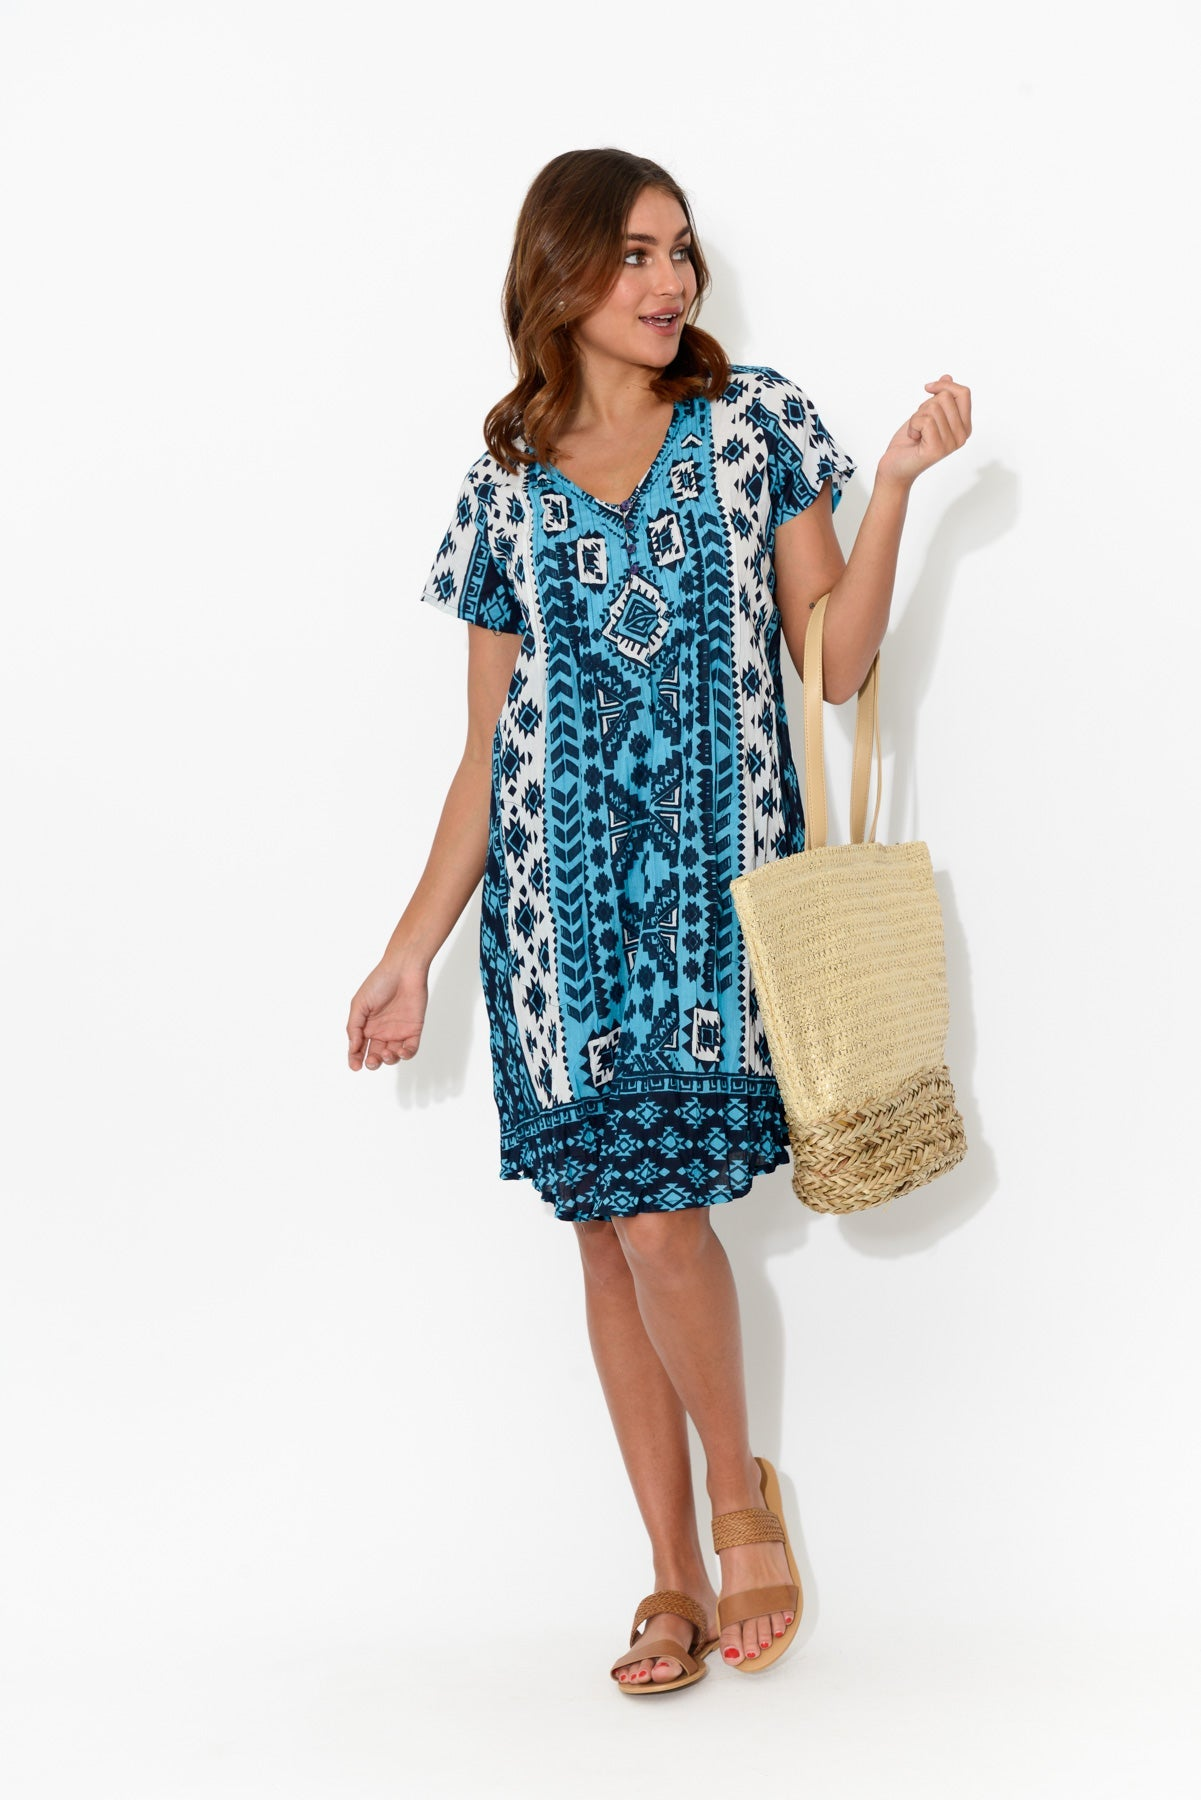 Navy Aztec Crinkle Cotton Dress - One Summer - Blue Bungalow Online